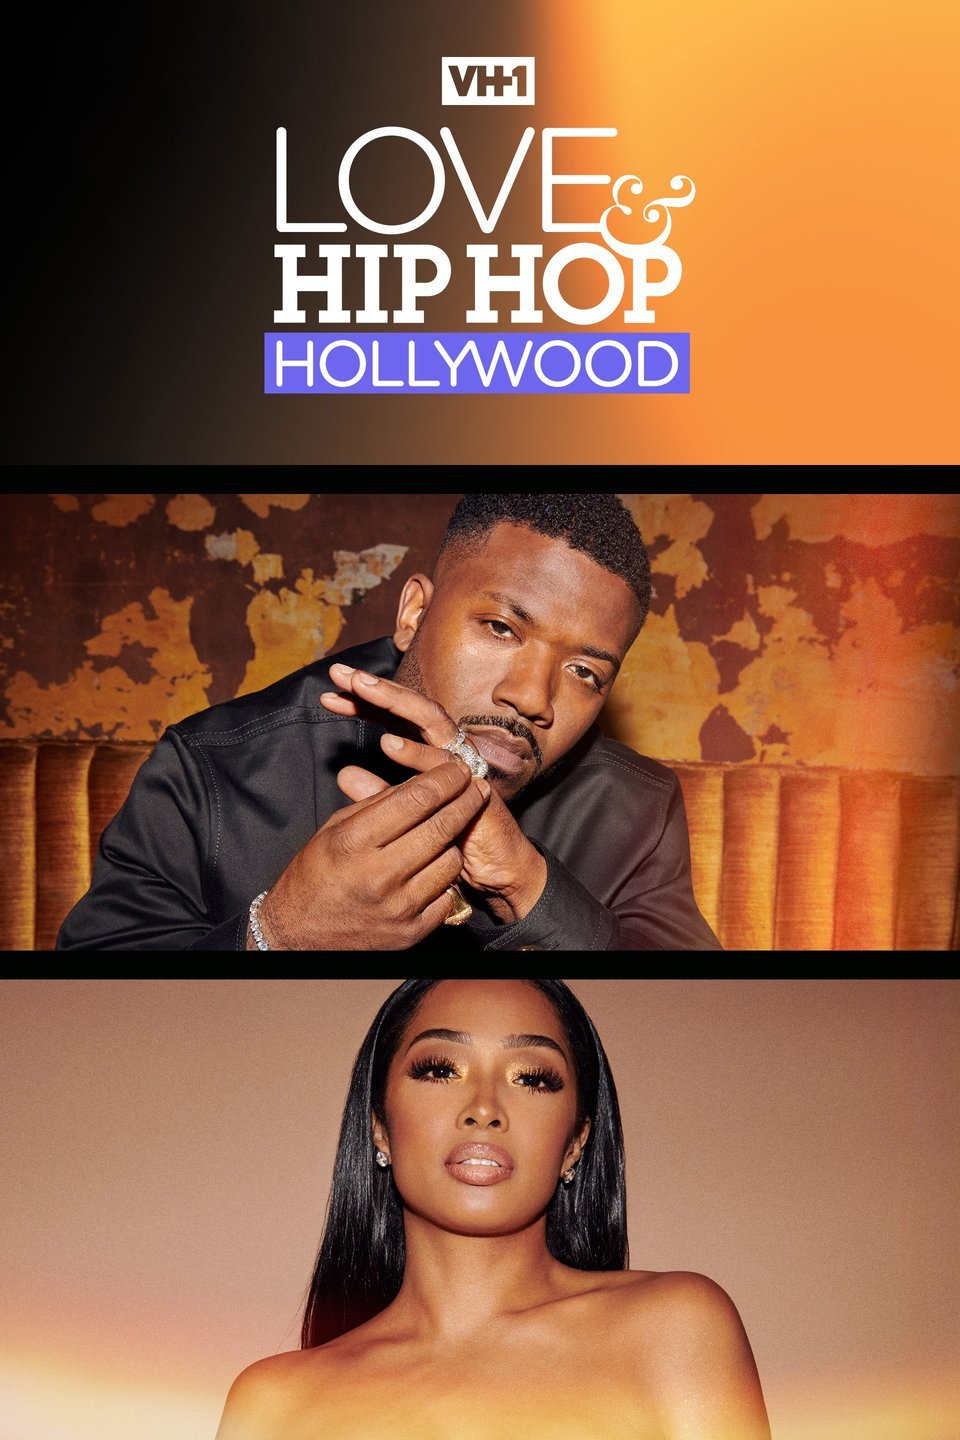 love and hip hop - hollywood.jpg